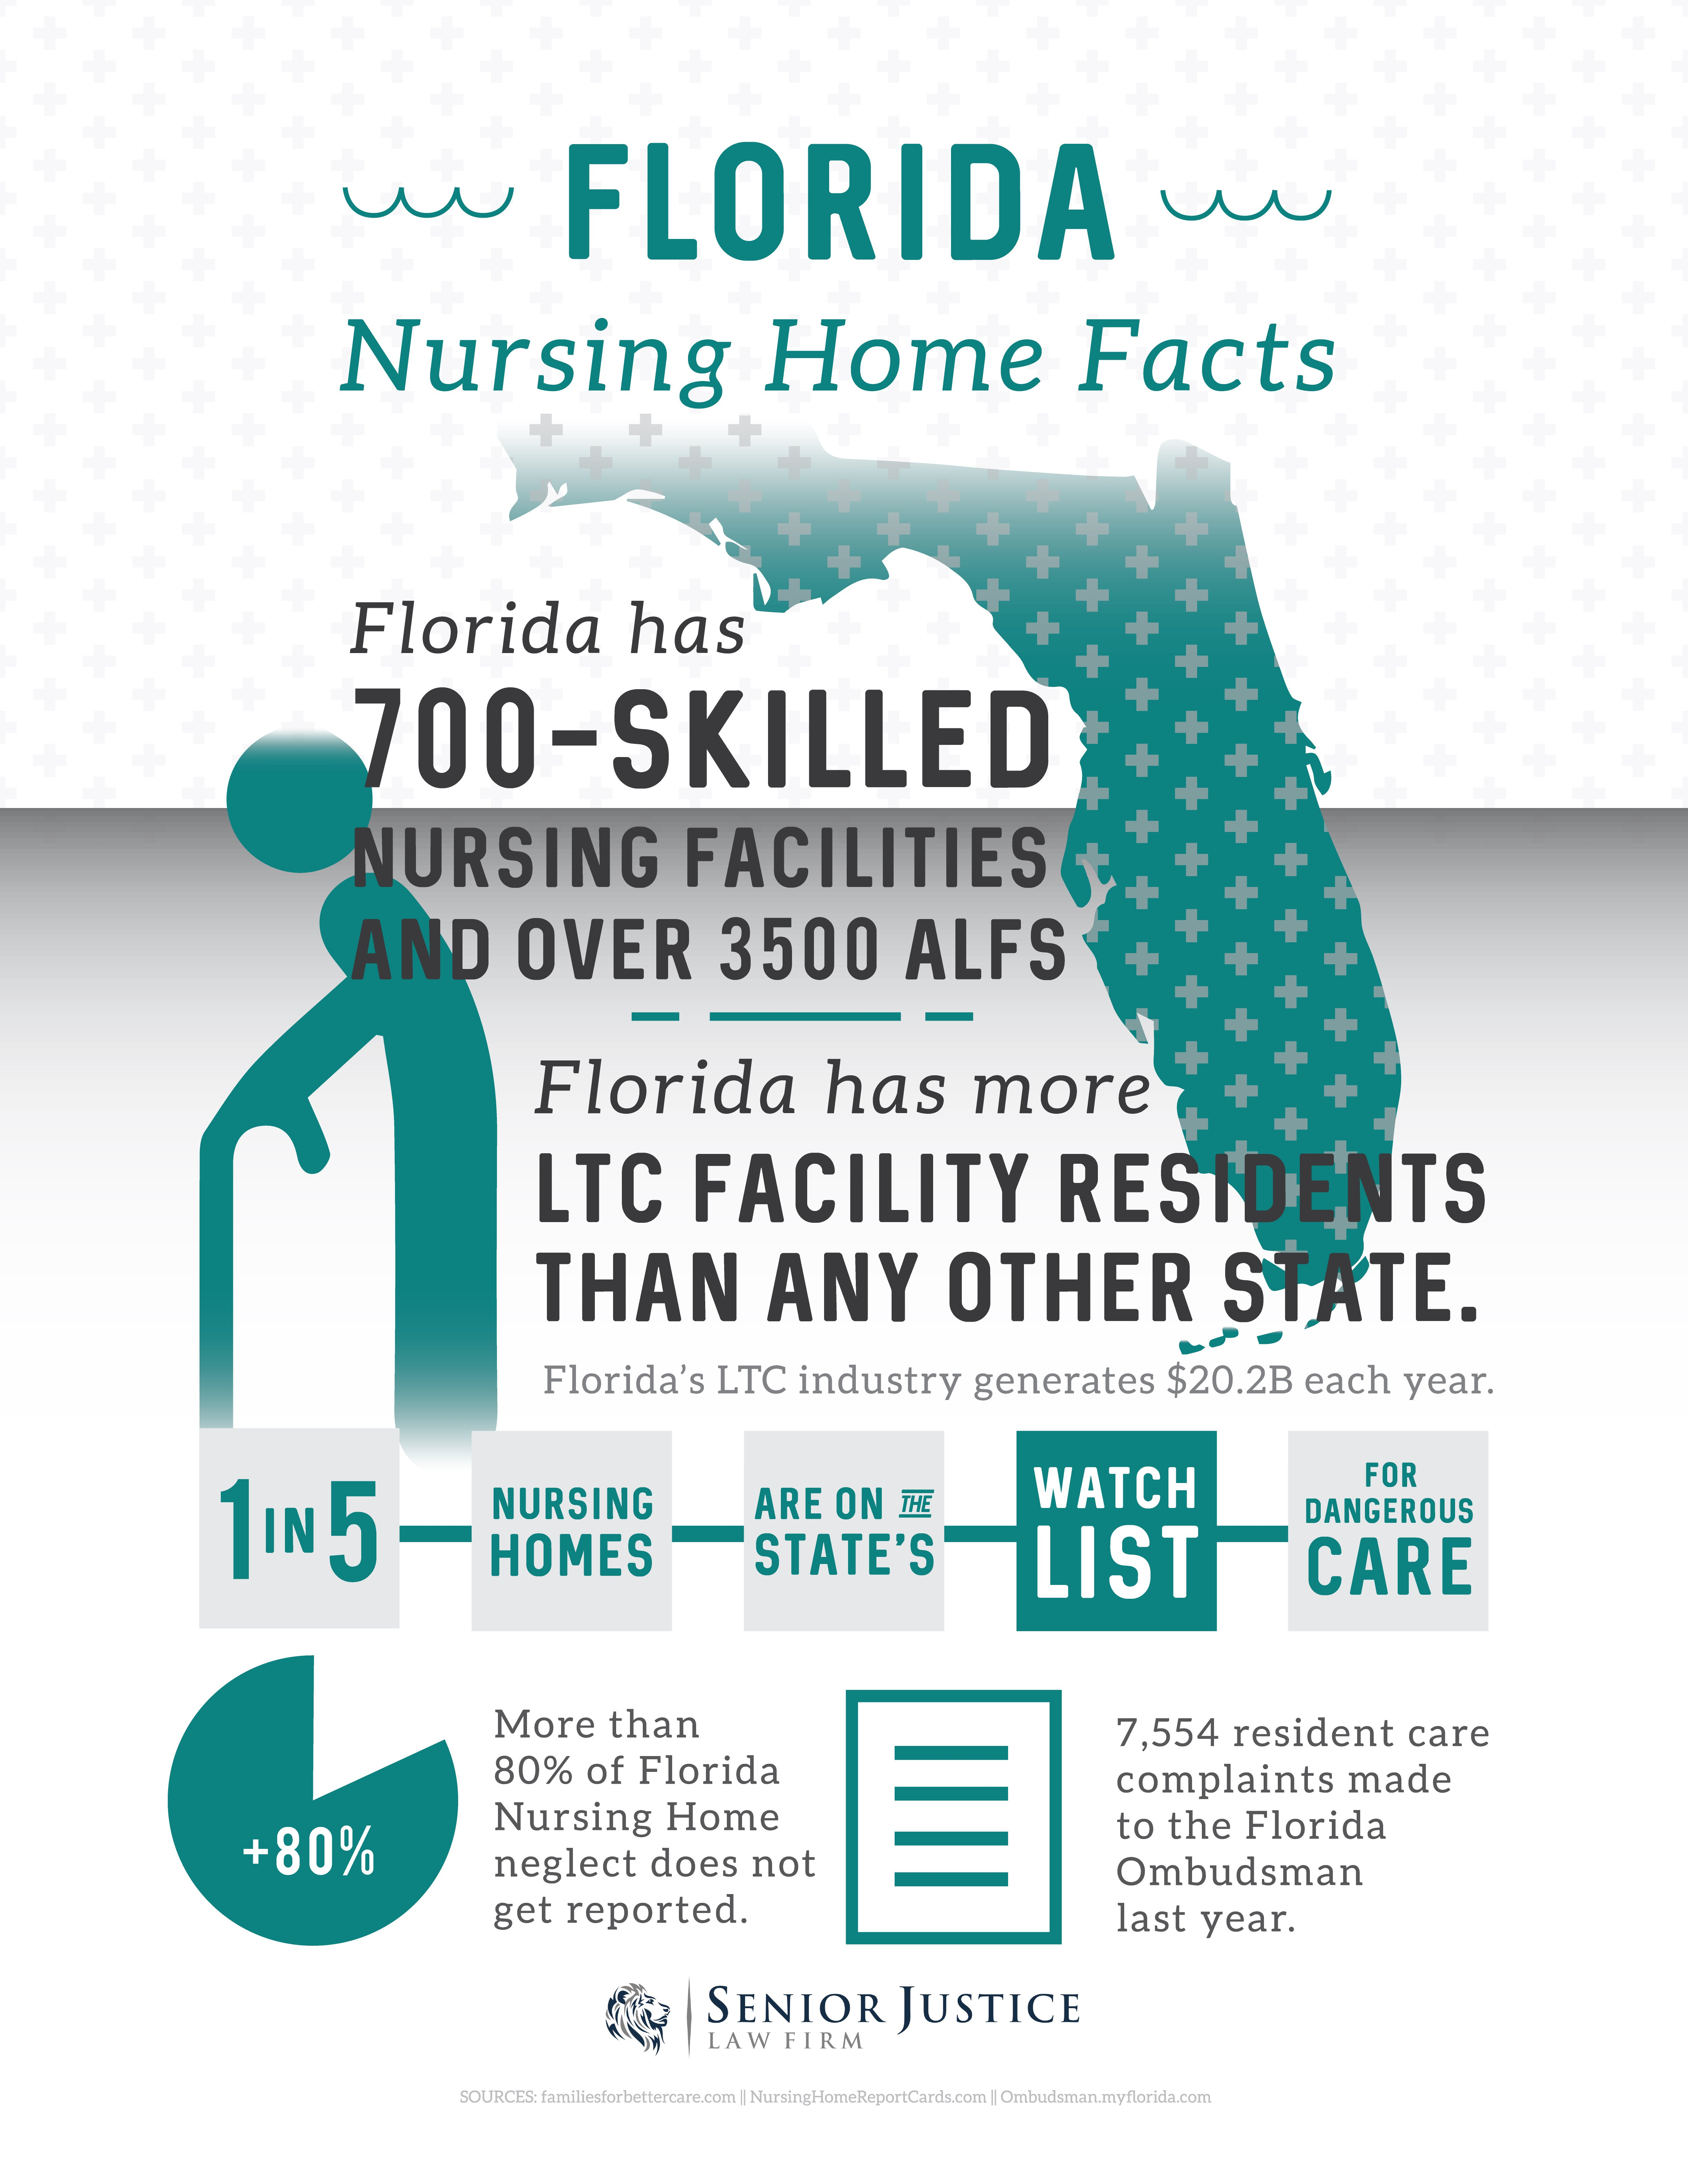 nursing legislation Registered nurses work in hospitals, physicians' offices, home healthcare services, and nursing care facilities others work in outpatient clinics and schools, or serve in the military others work in outpatient clinics and schools, or serve in the military.